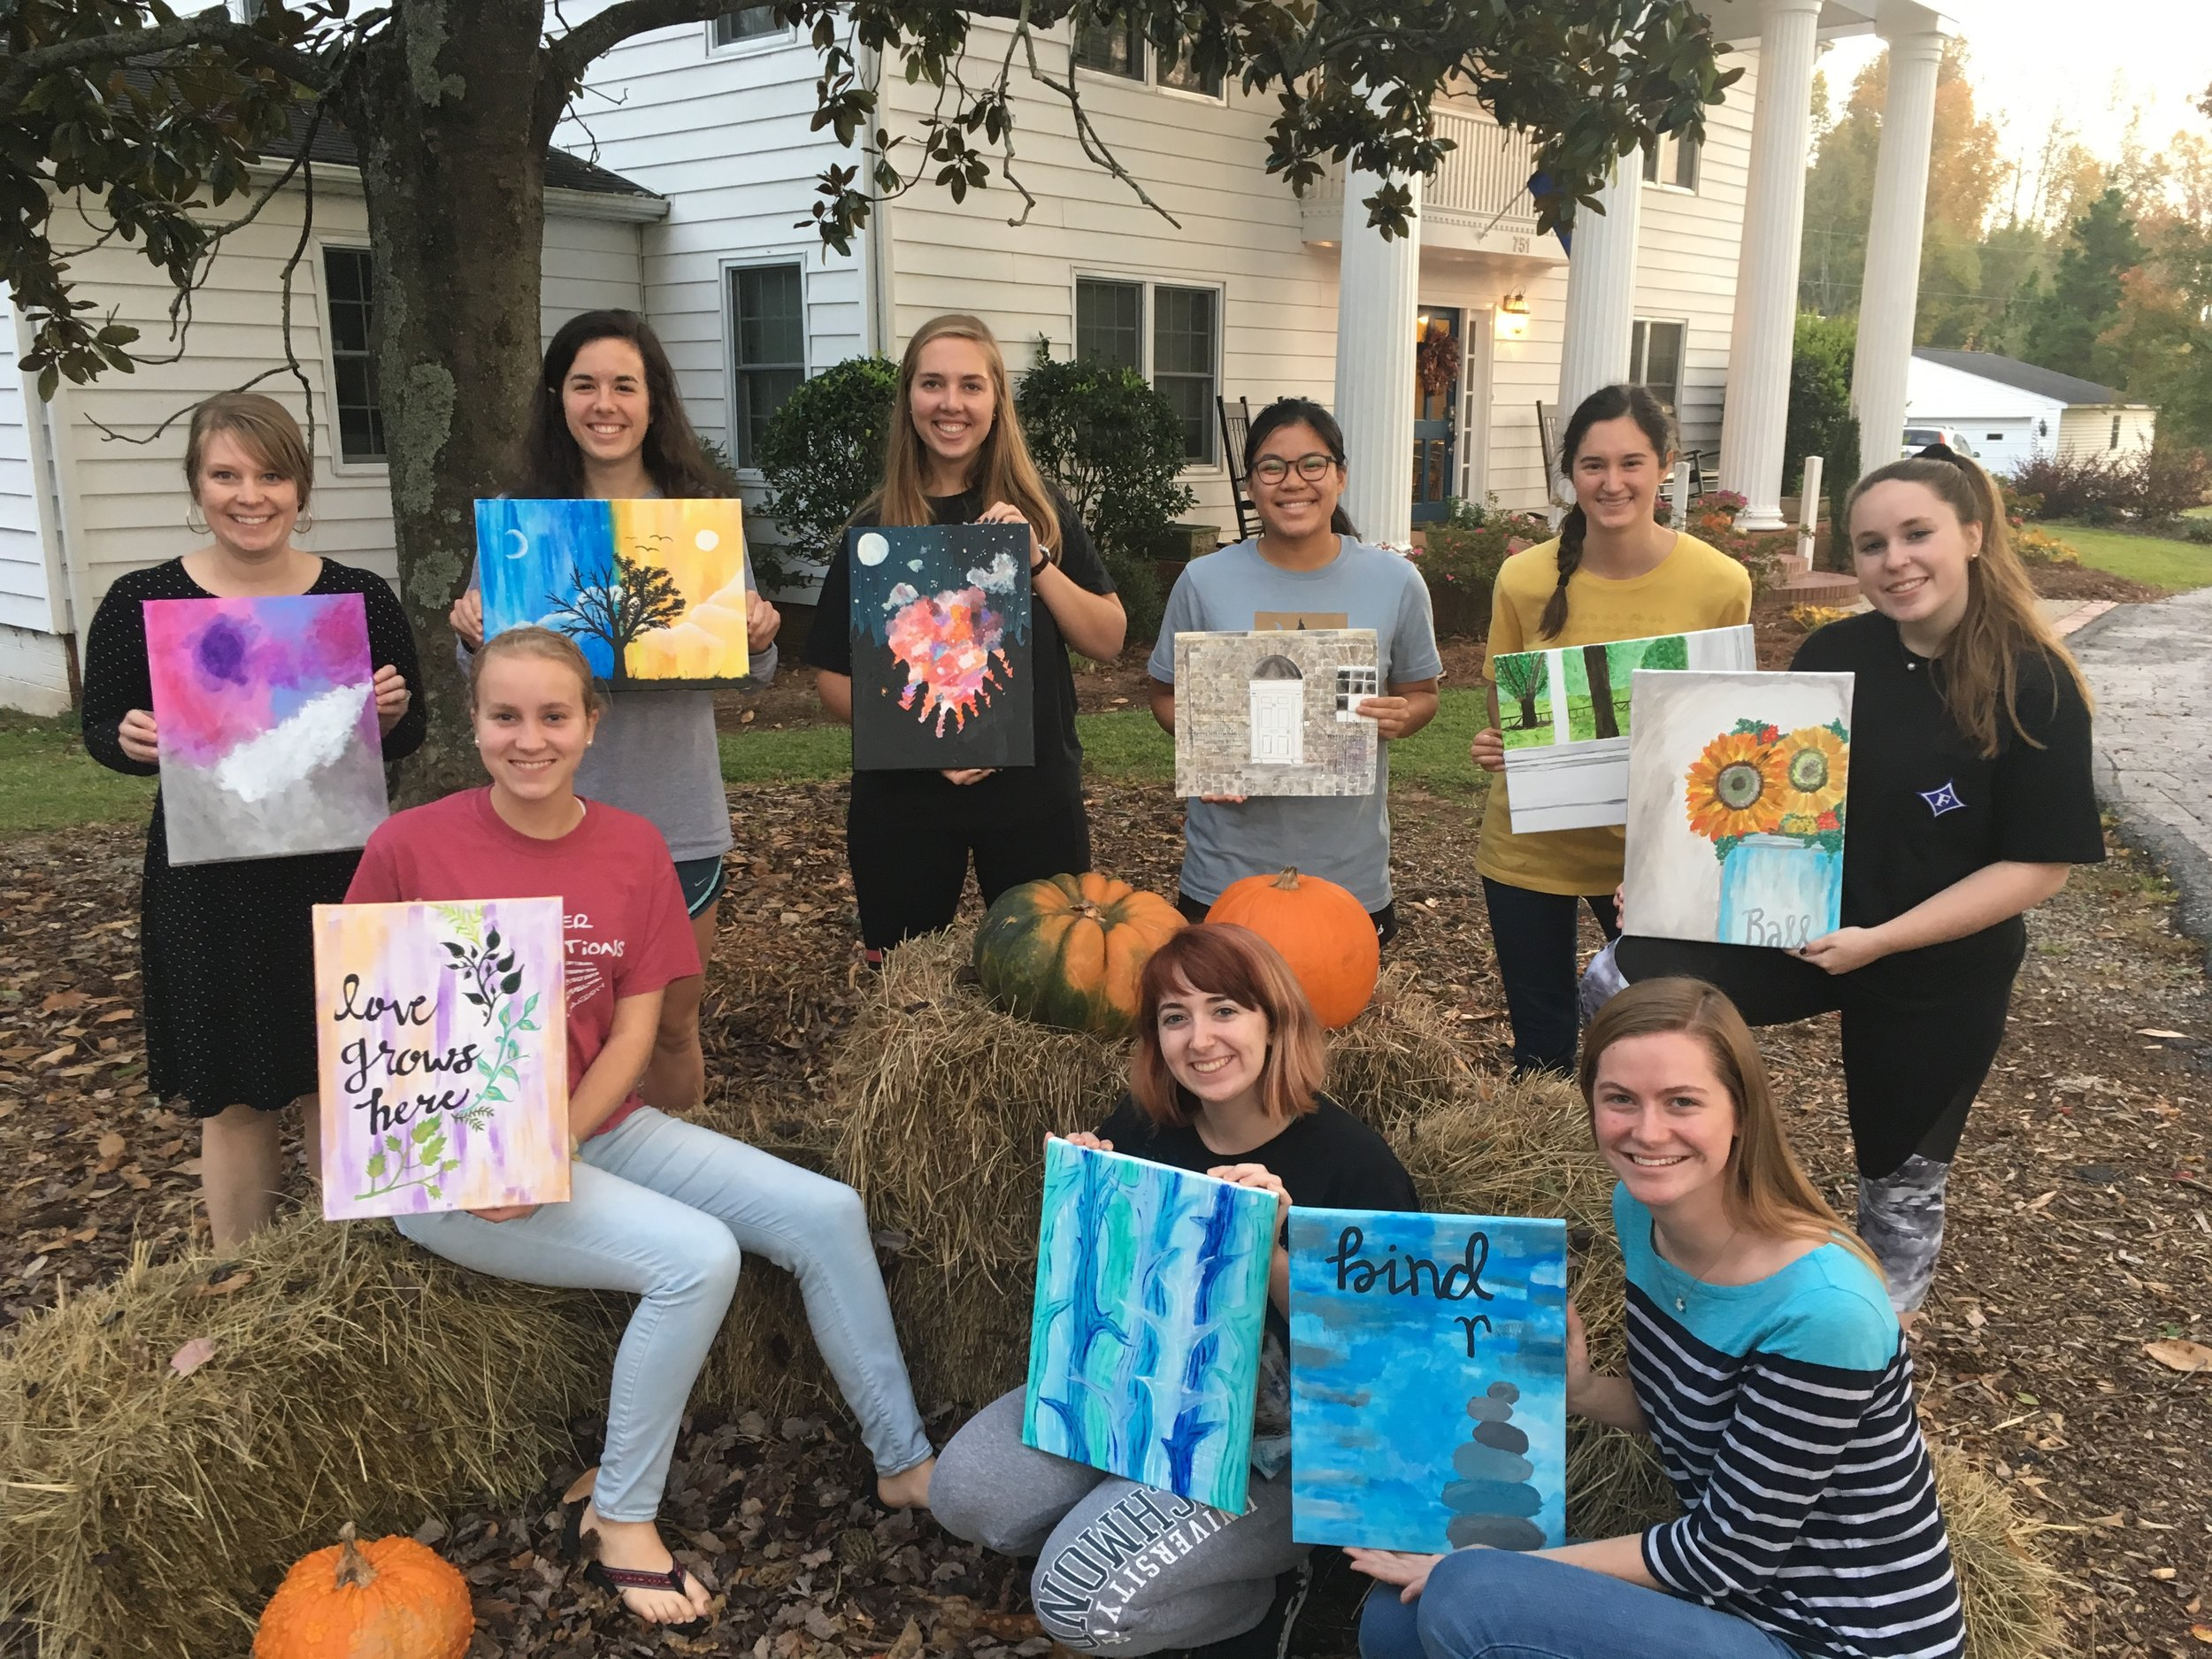 The Womens Followship groups gathered to paint at Vista House this fall.